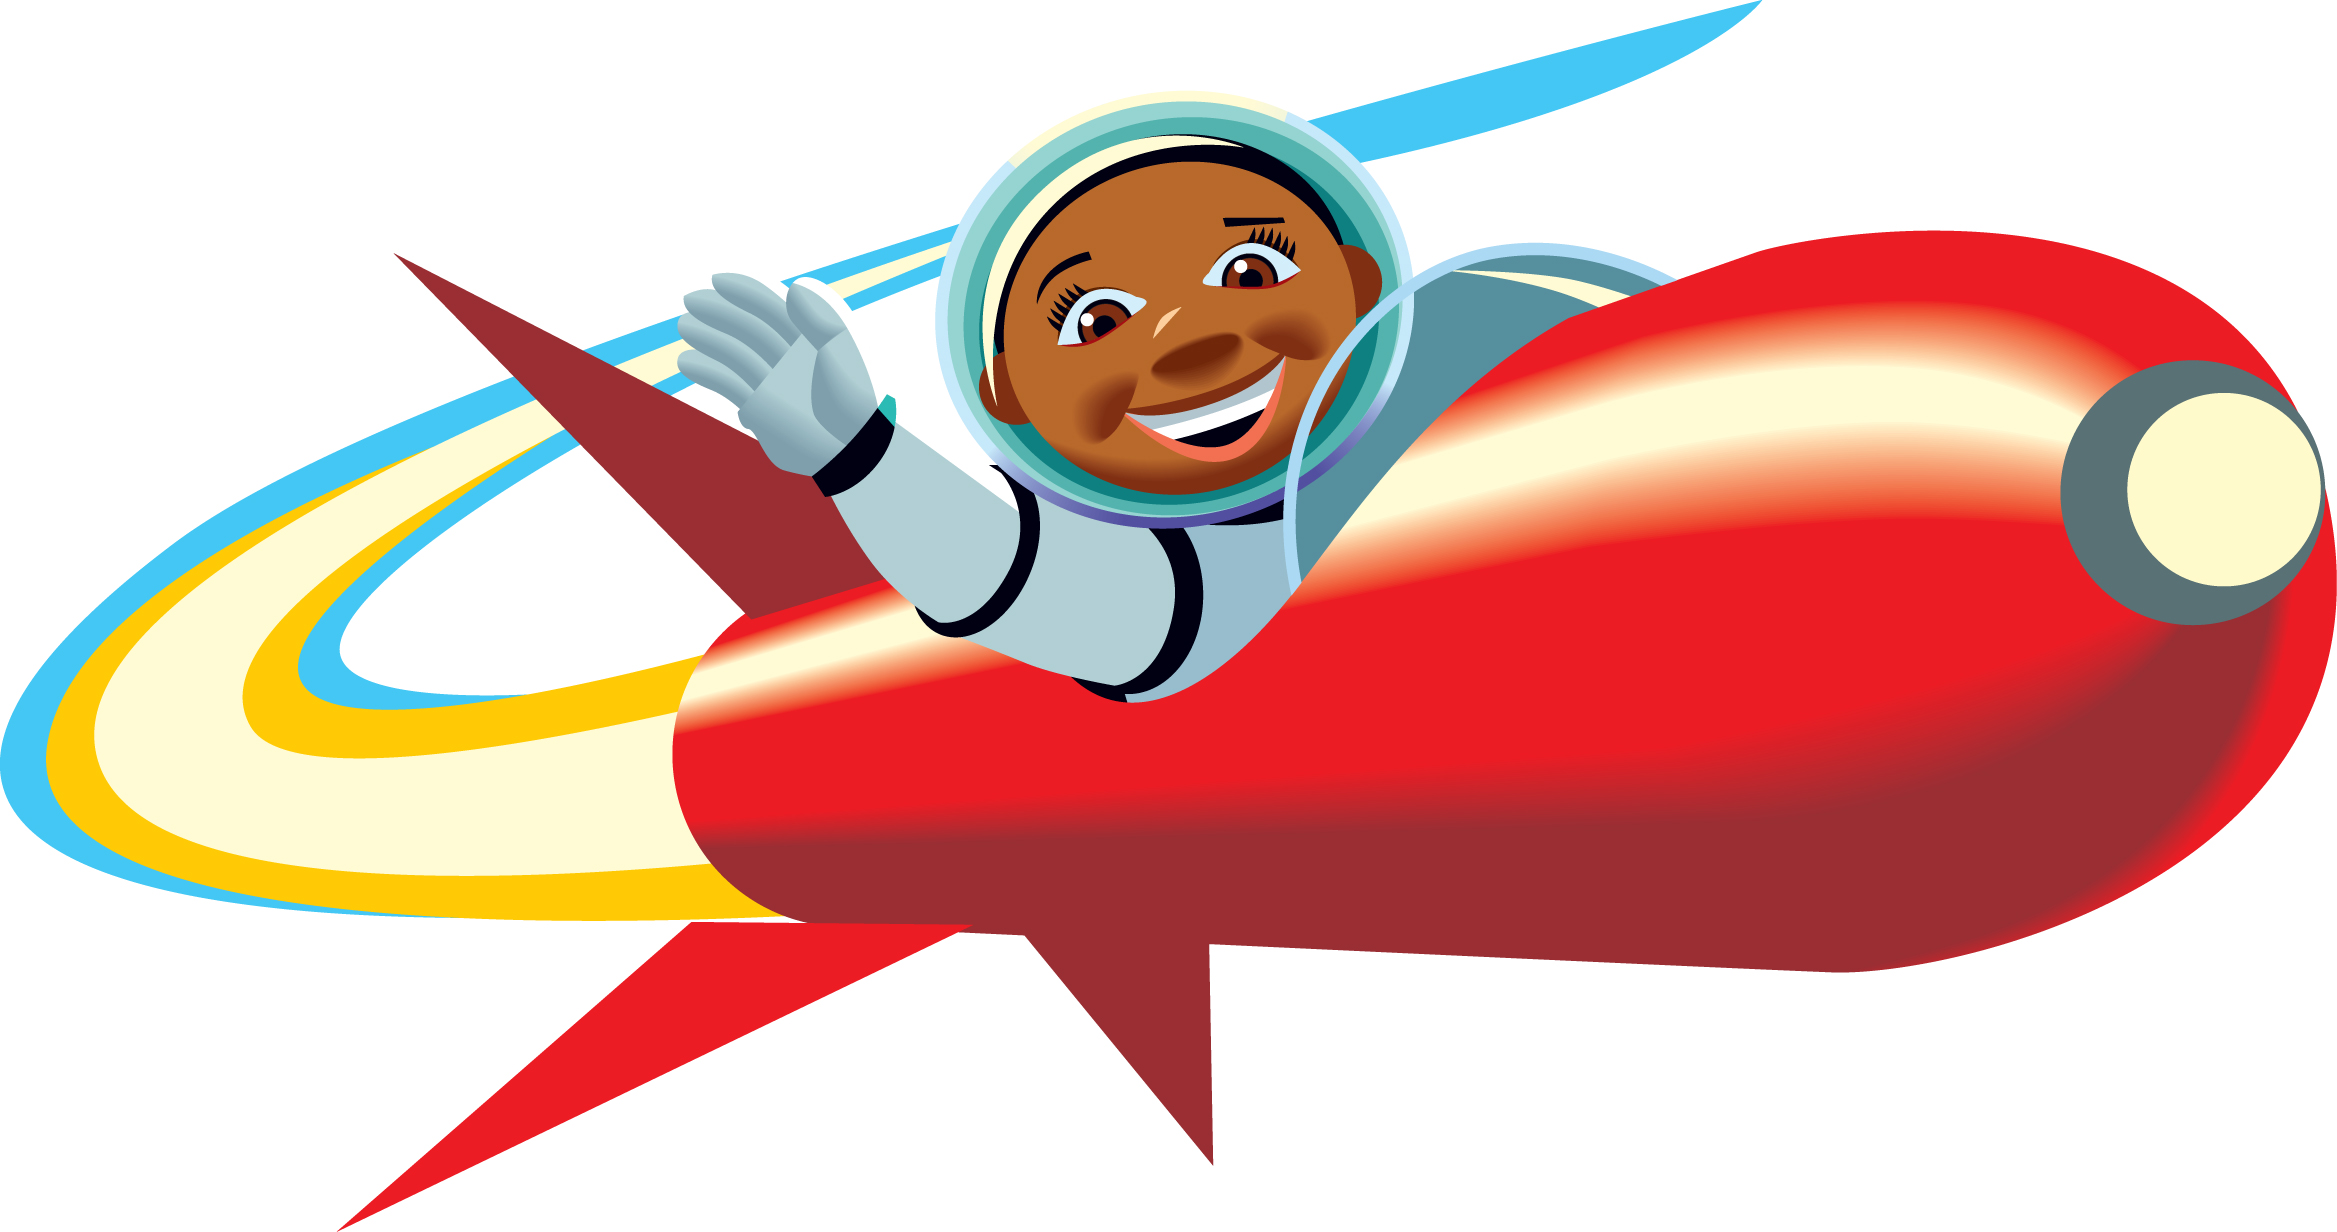 Rocket clipart #1, Download drawings